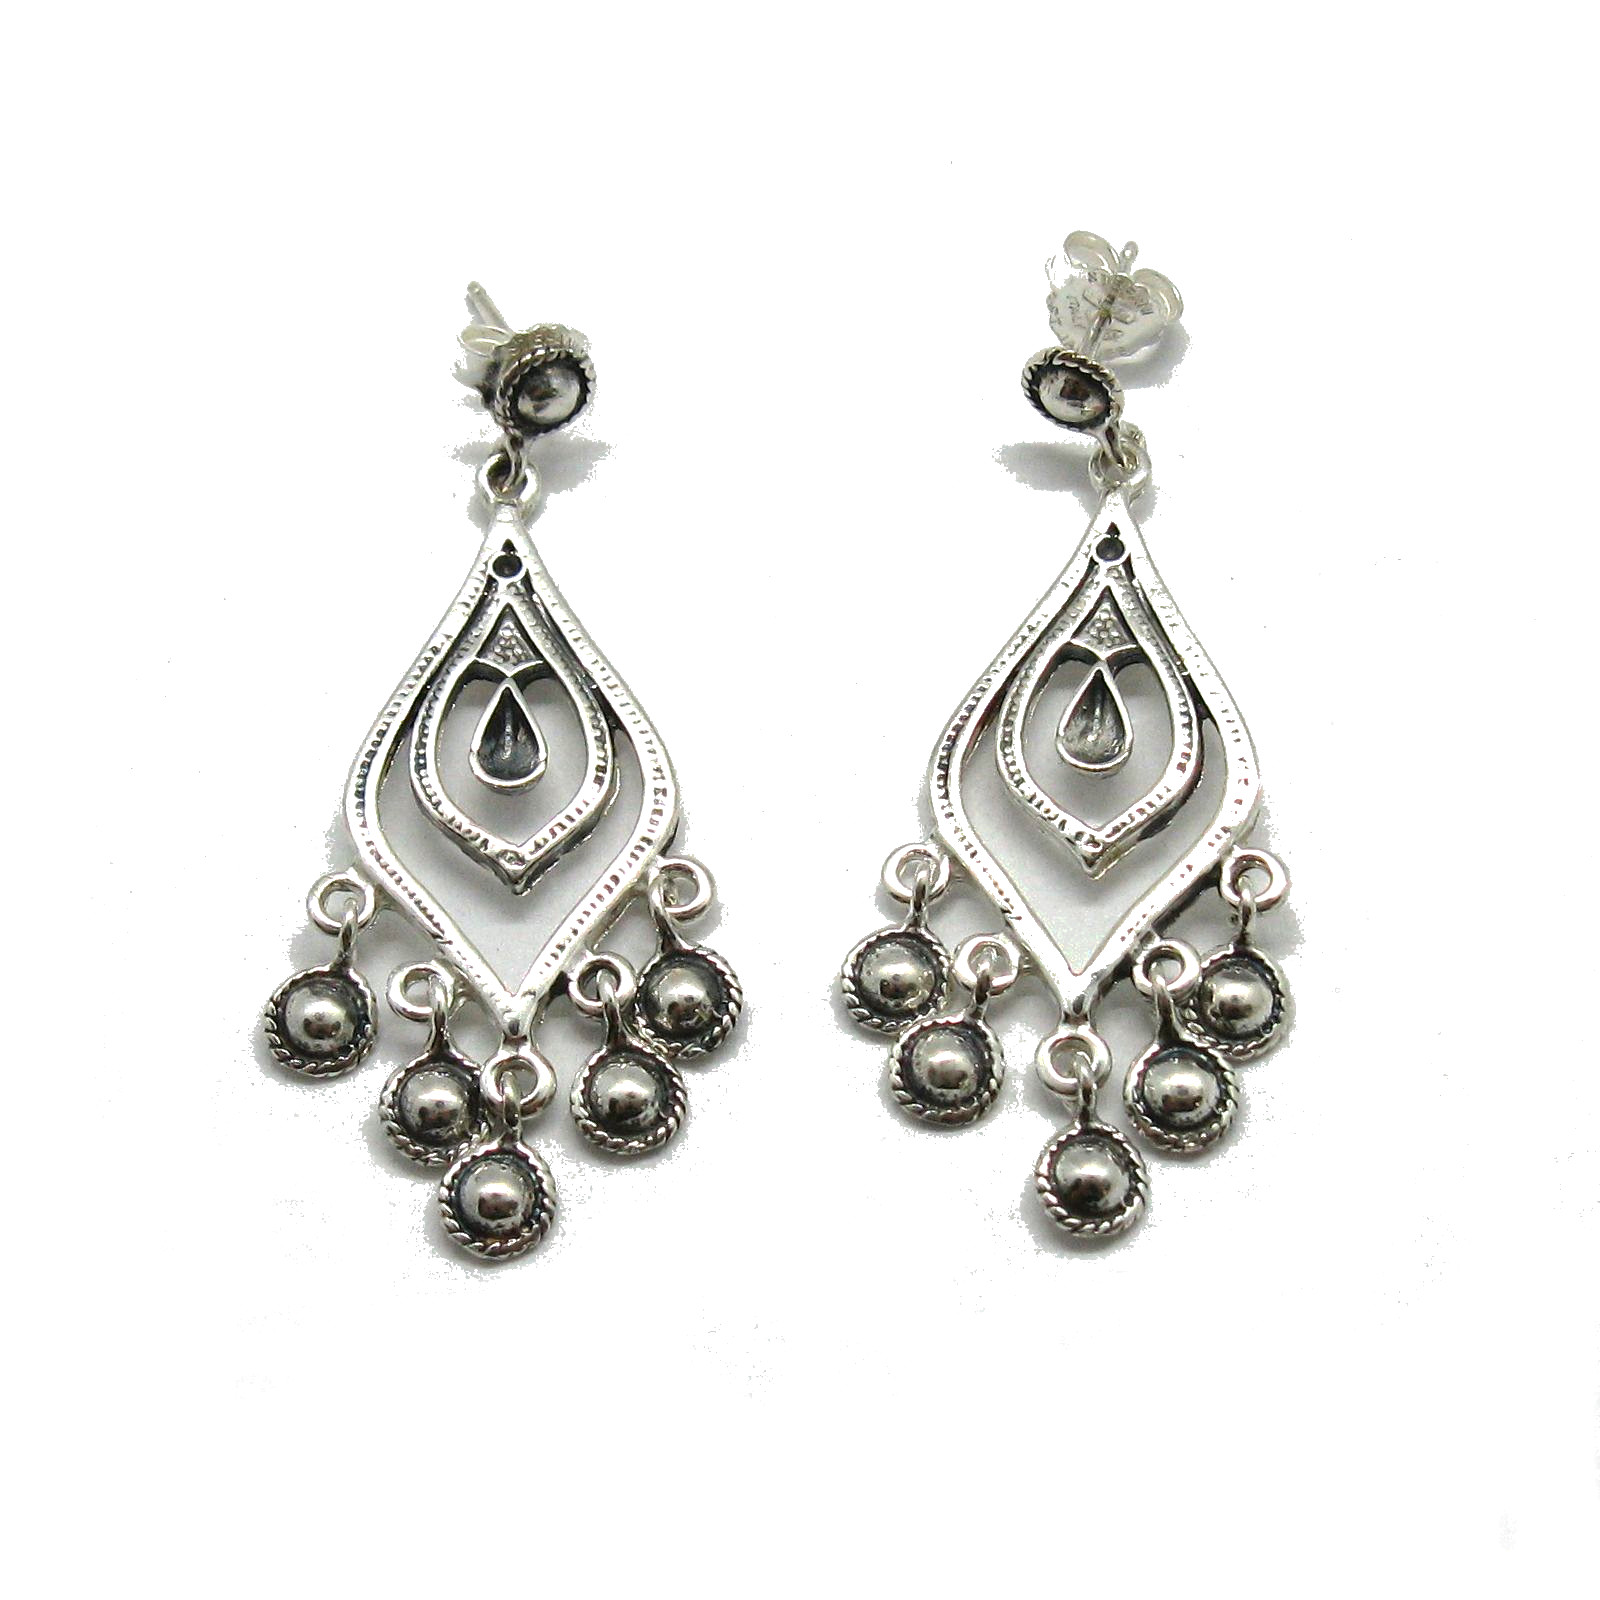 Silver earrings - E000735